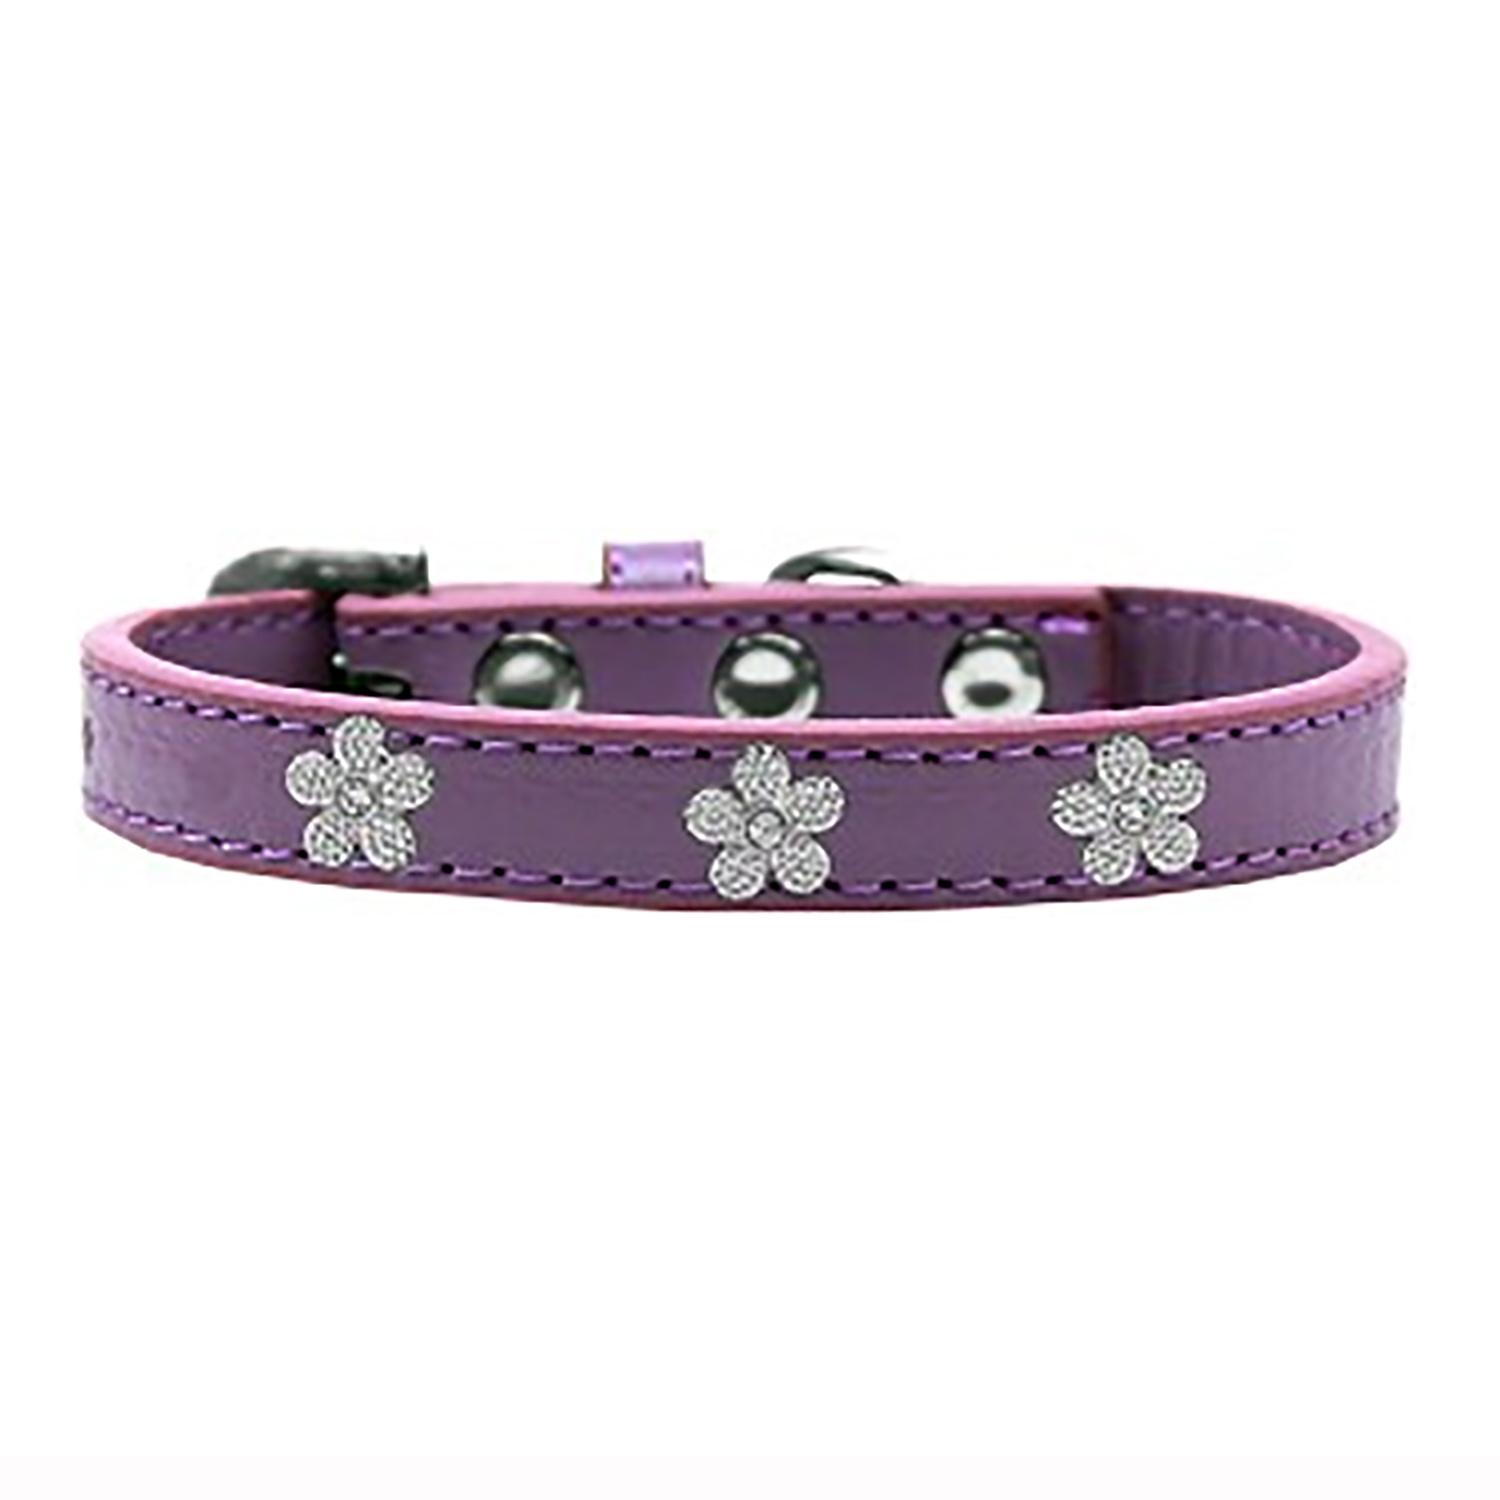 Silver Flower Widget Dog Collar - Lavender